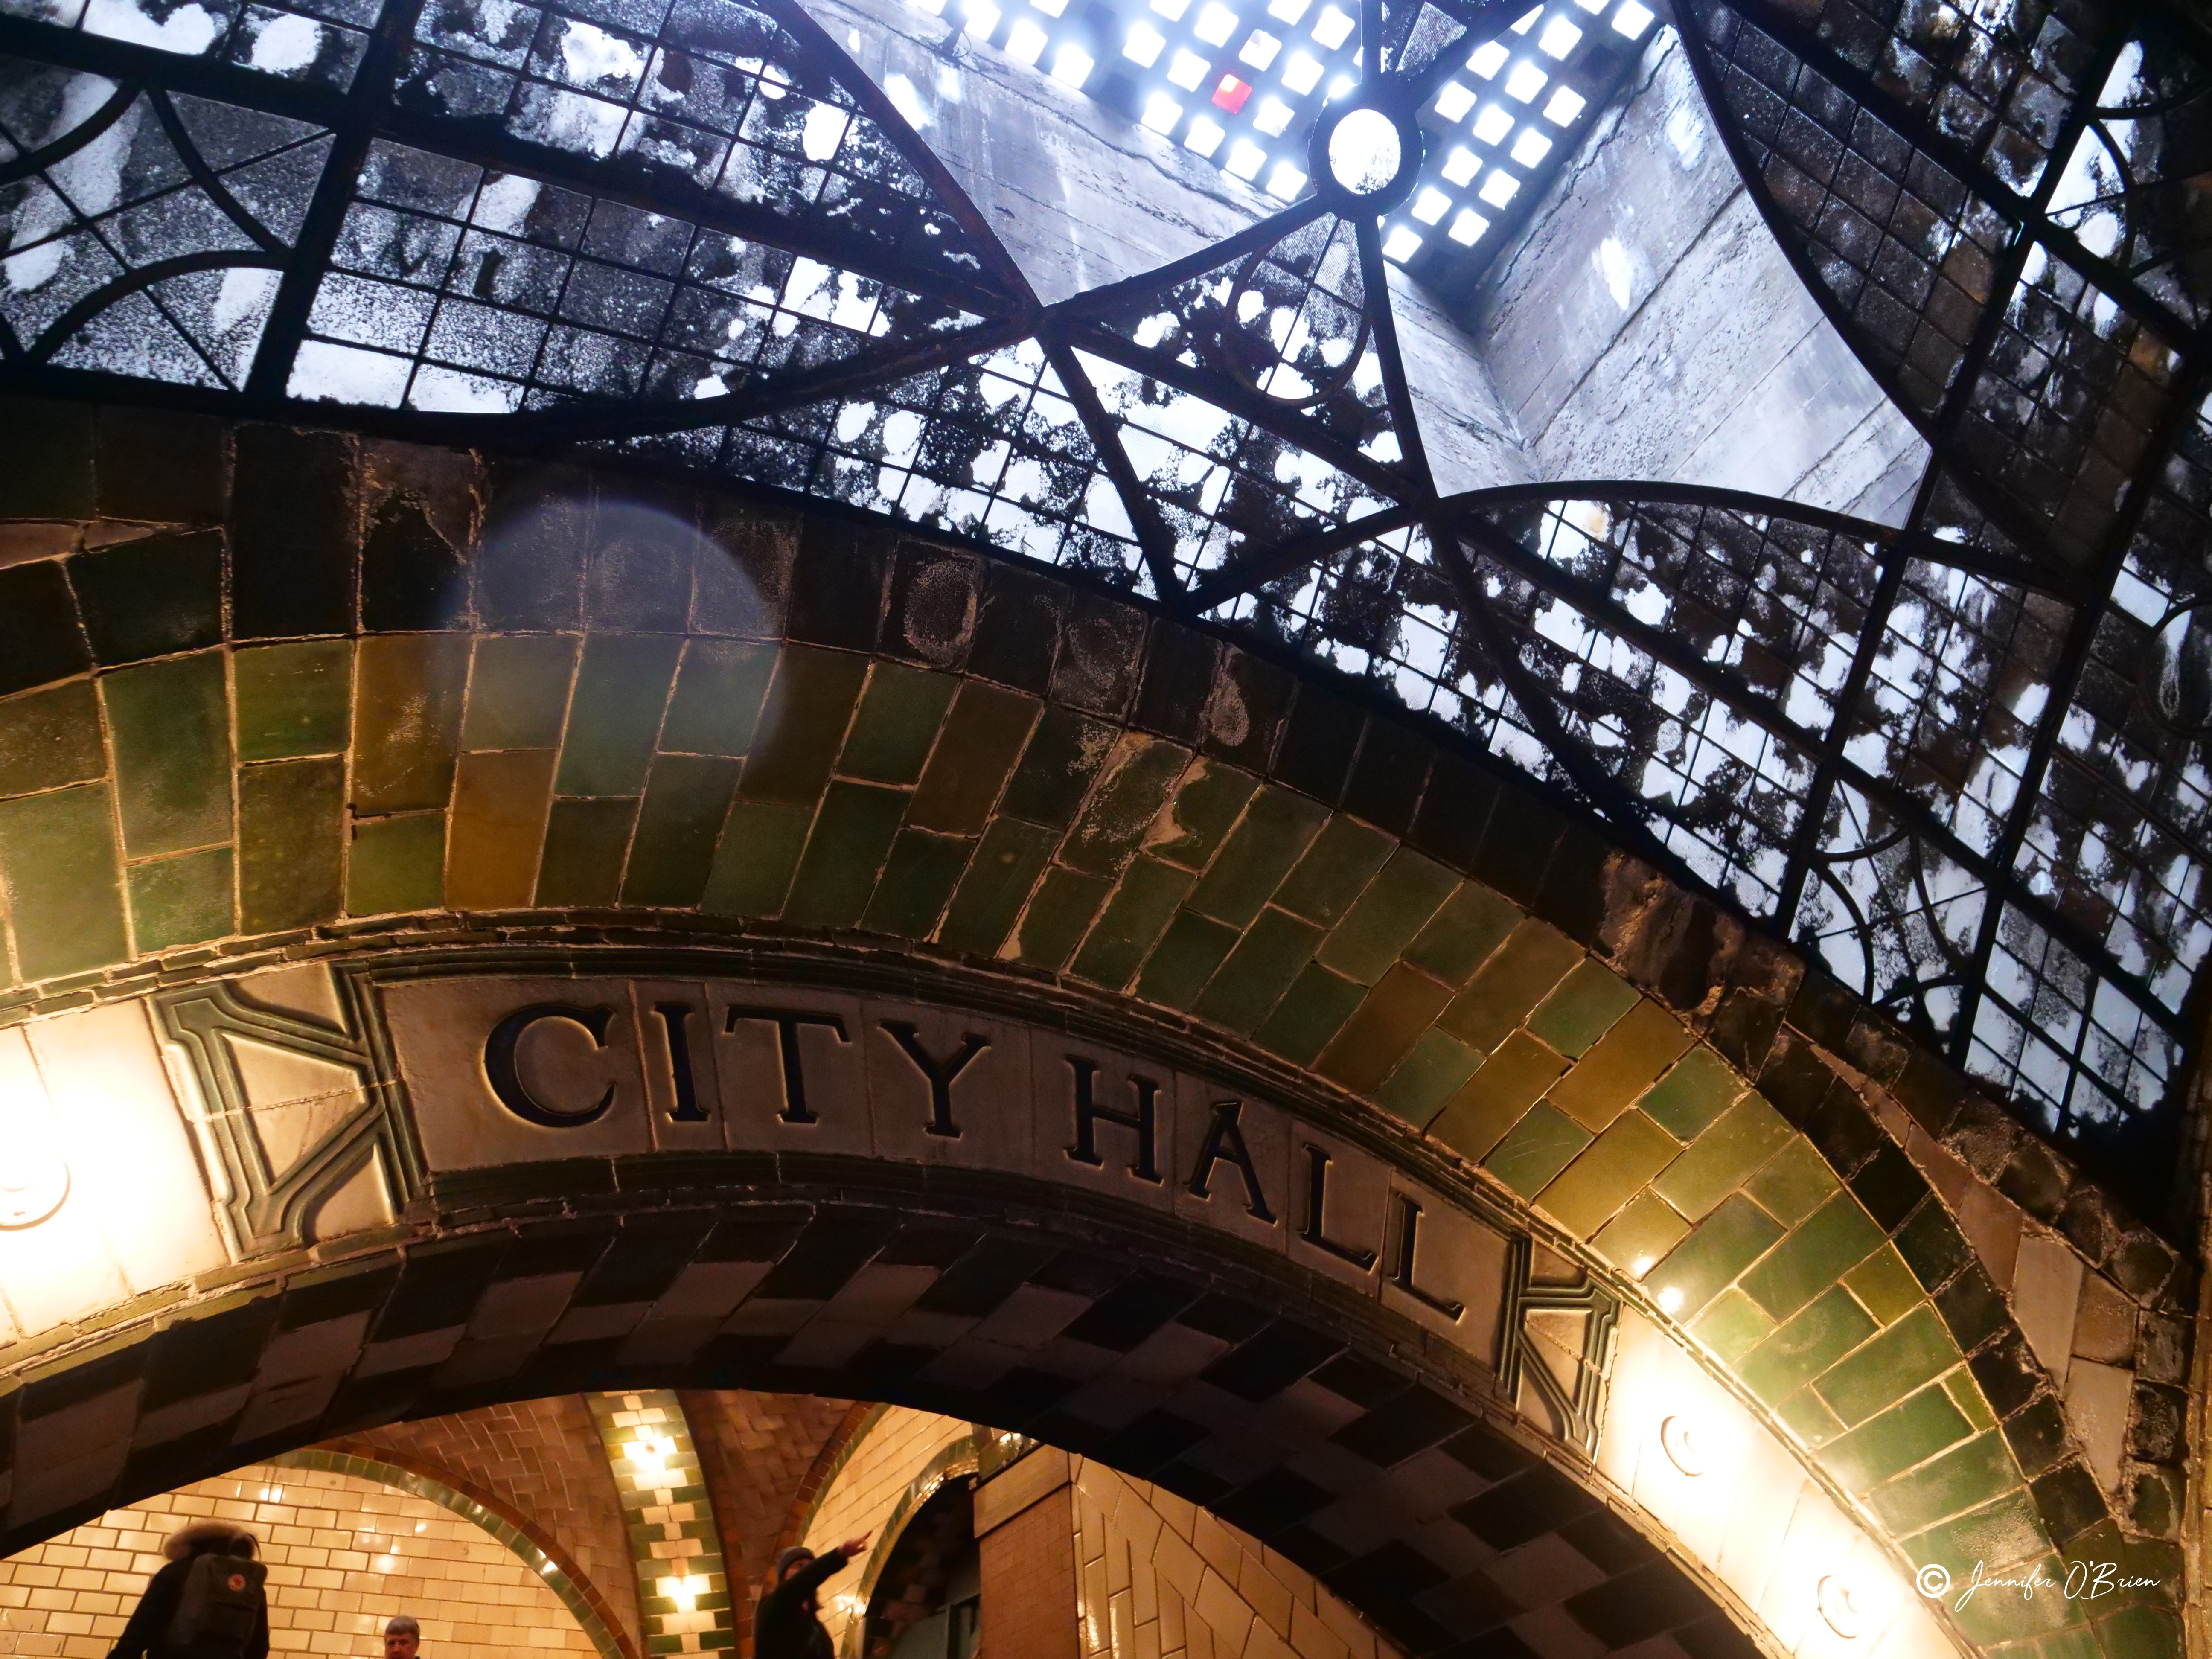 Lady pointing at sign NYC Abandoned City Hall Subway Station Photo Challenge